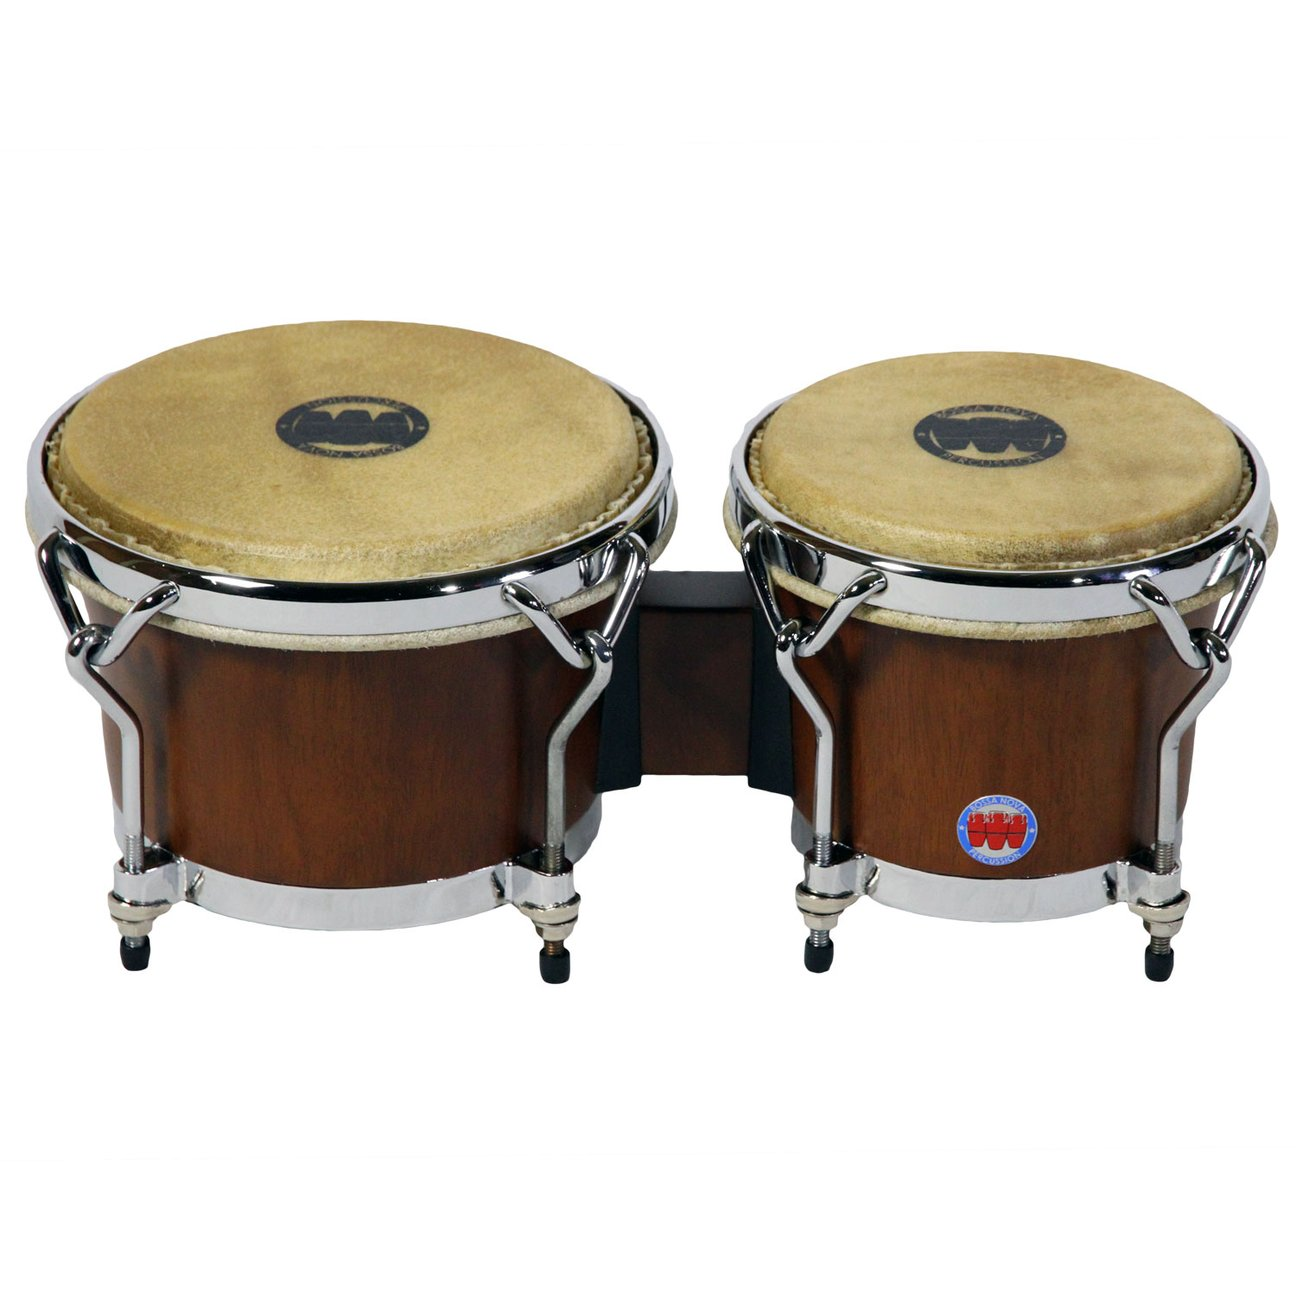 Bossa Nova Percussion Rumba Series Bongos